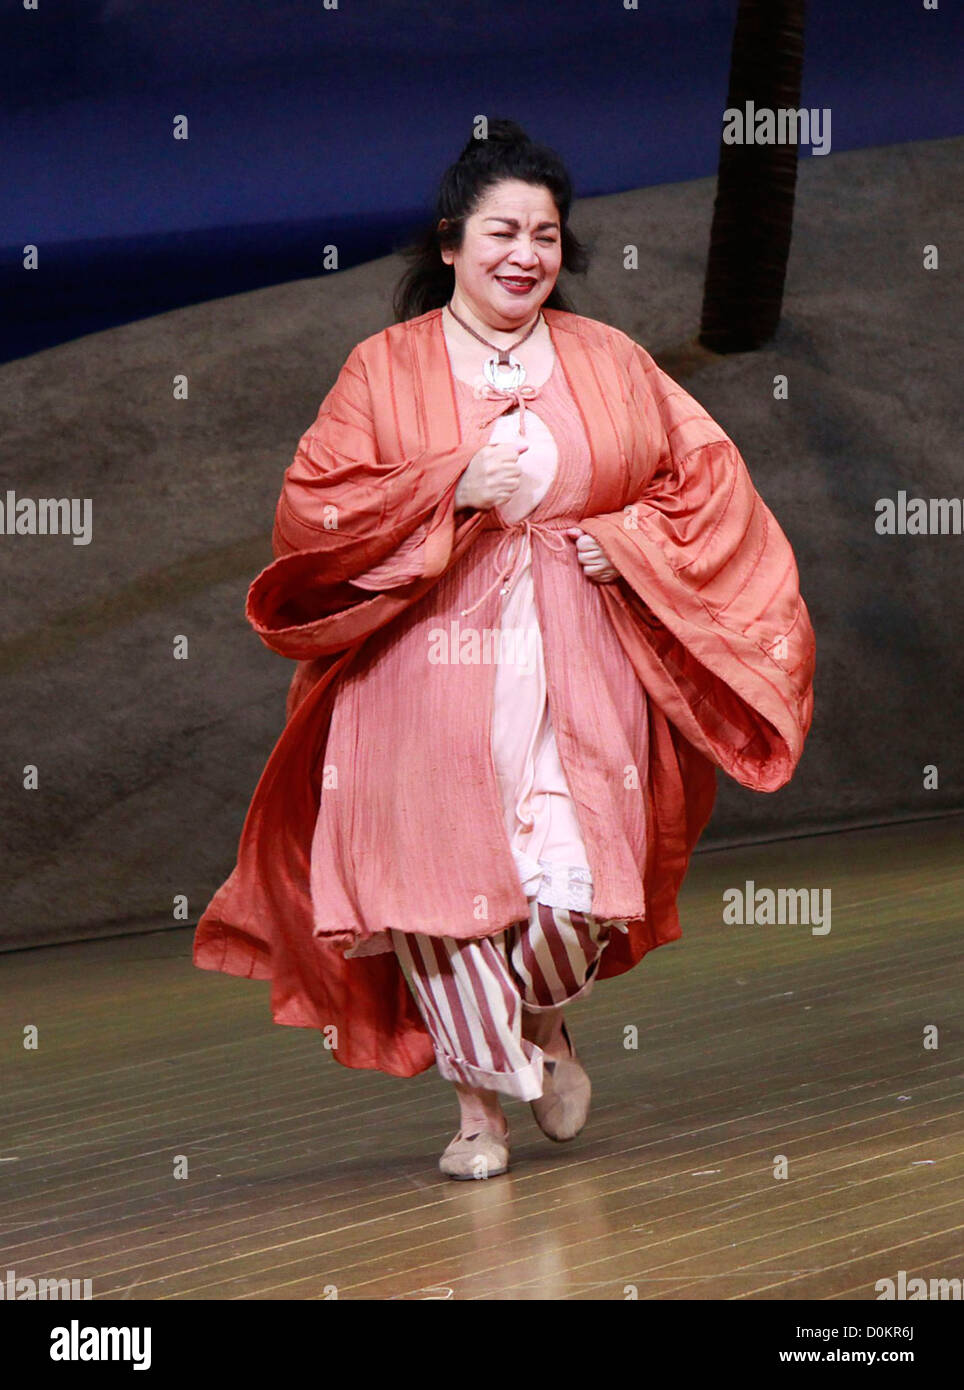 Loretta Ables Sayre Closing night of the Lincoln Center Theater production of 'South Pacific' at the Vivian - Stock Image